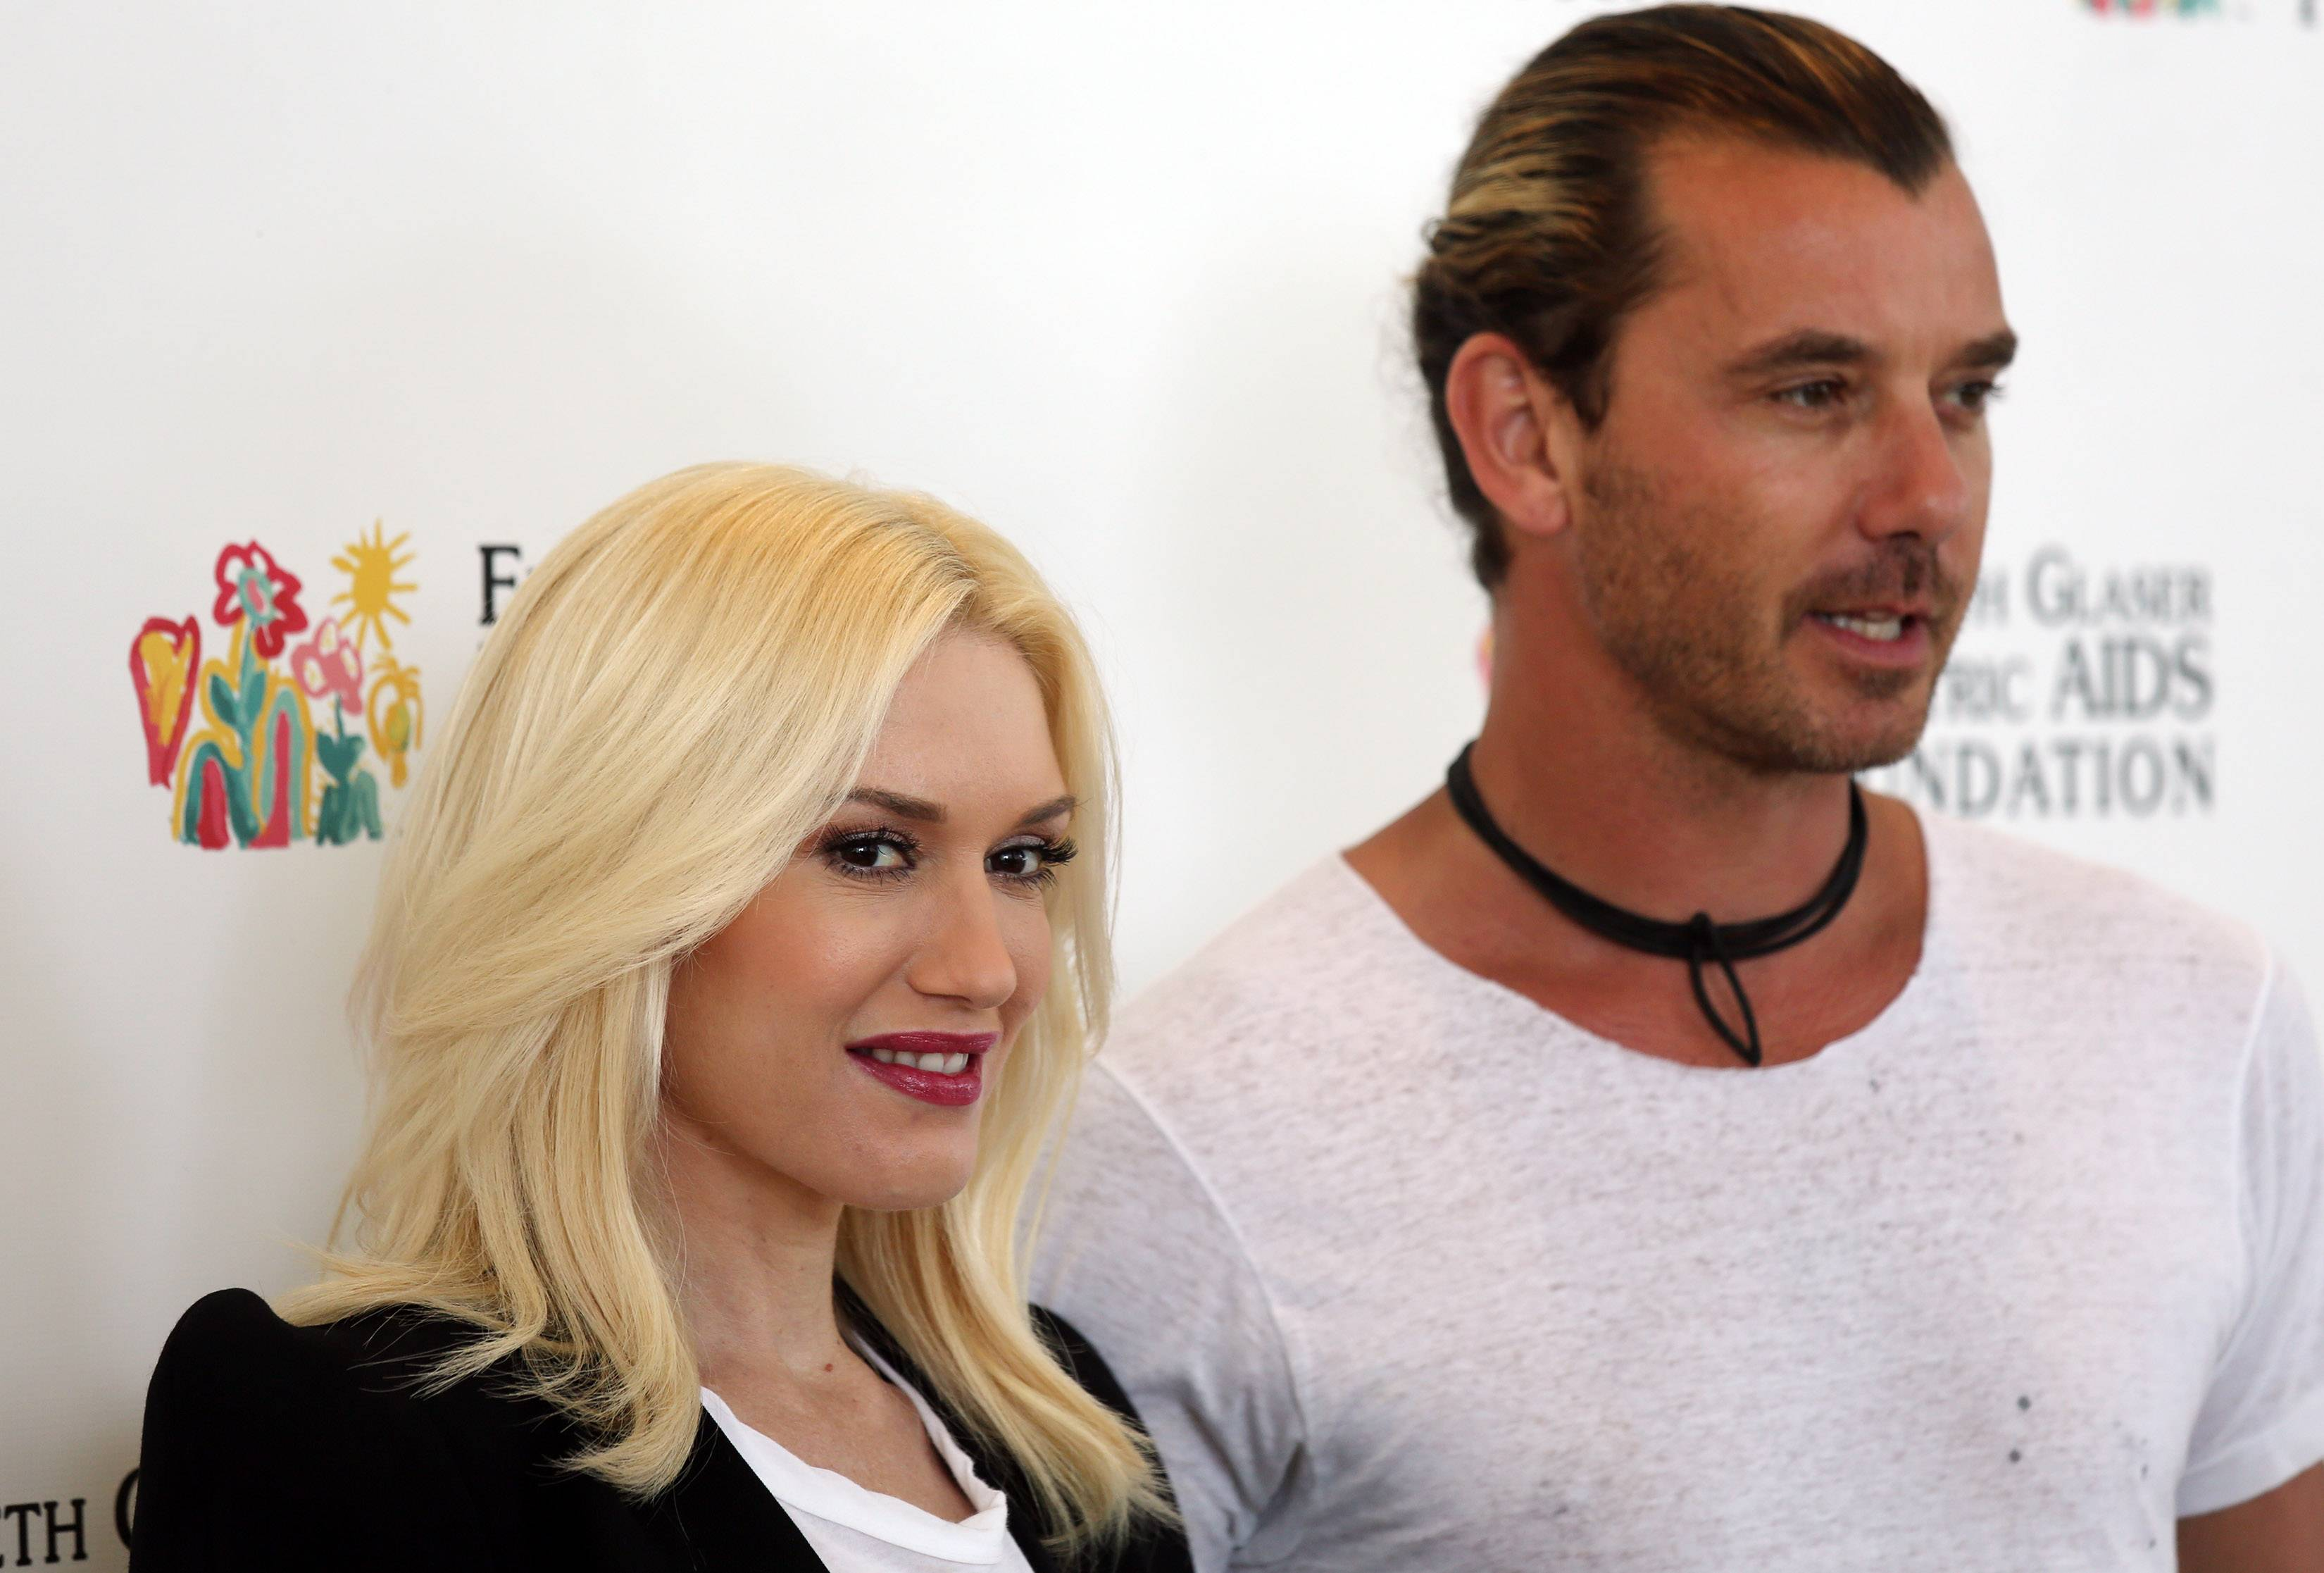 Gwen Stefani and Gavin Rossdale welcomed their third son, Apollo Bowie Flynn Rossdale, on Friday.